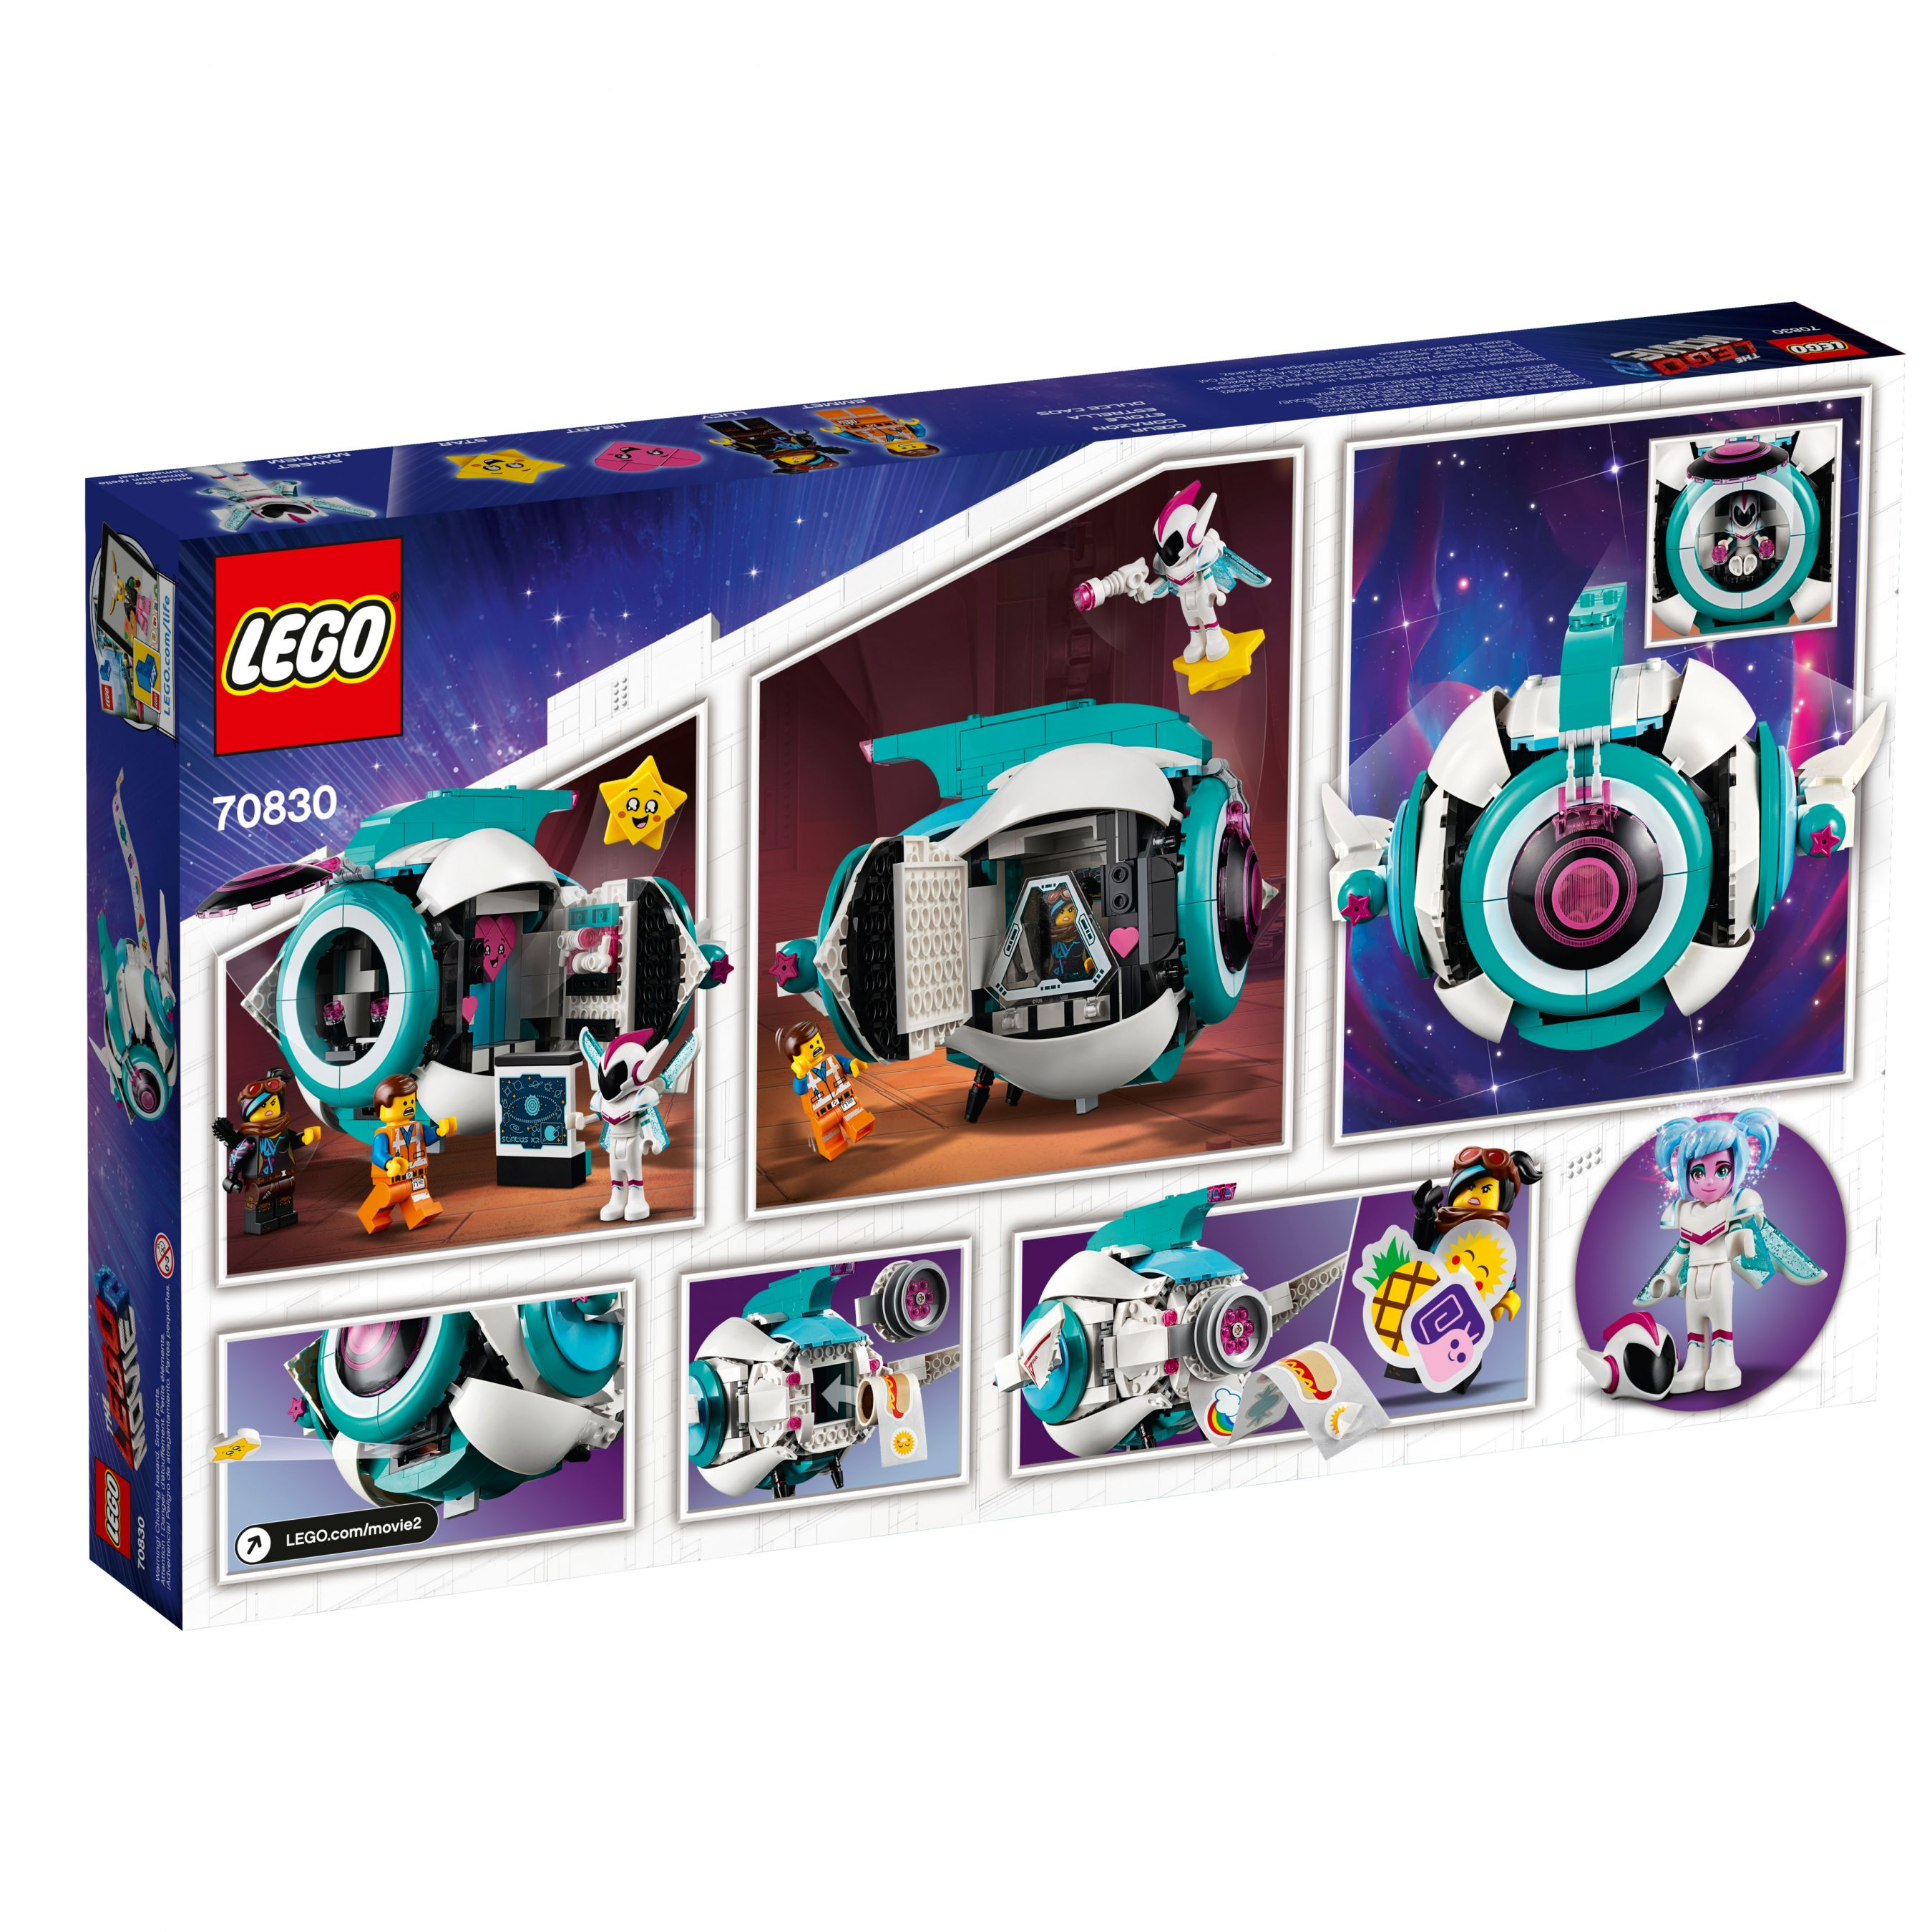 LEGO The LEGO Movie 2 70830 Sweet Mischmaschs Schwester-Raumschiff LEGO_70830_alt2.jpg